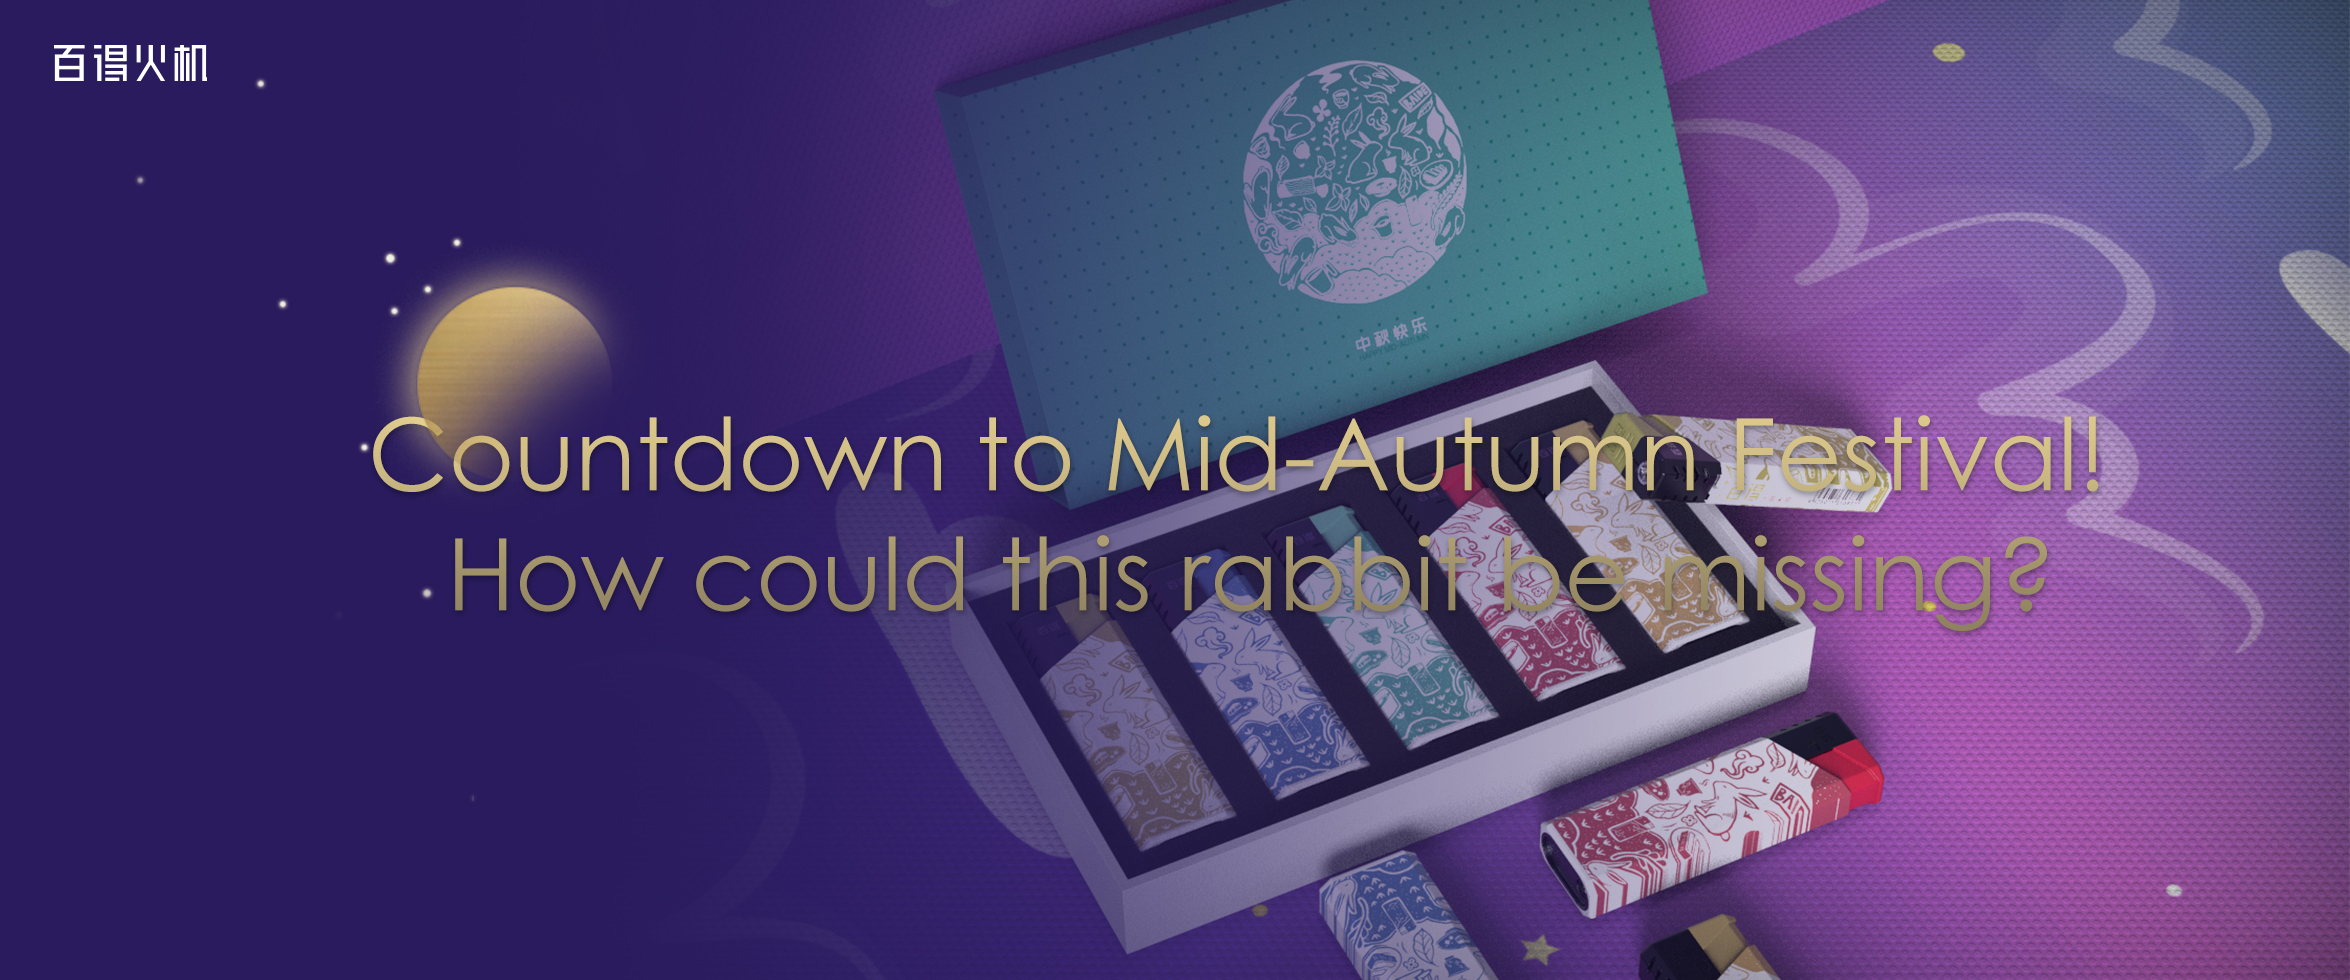 Countdown to Mid-Autumn Festival! How could this rabbit be missing?